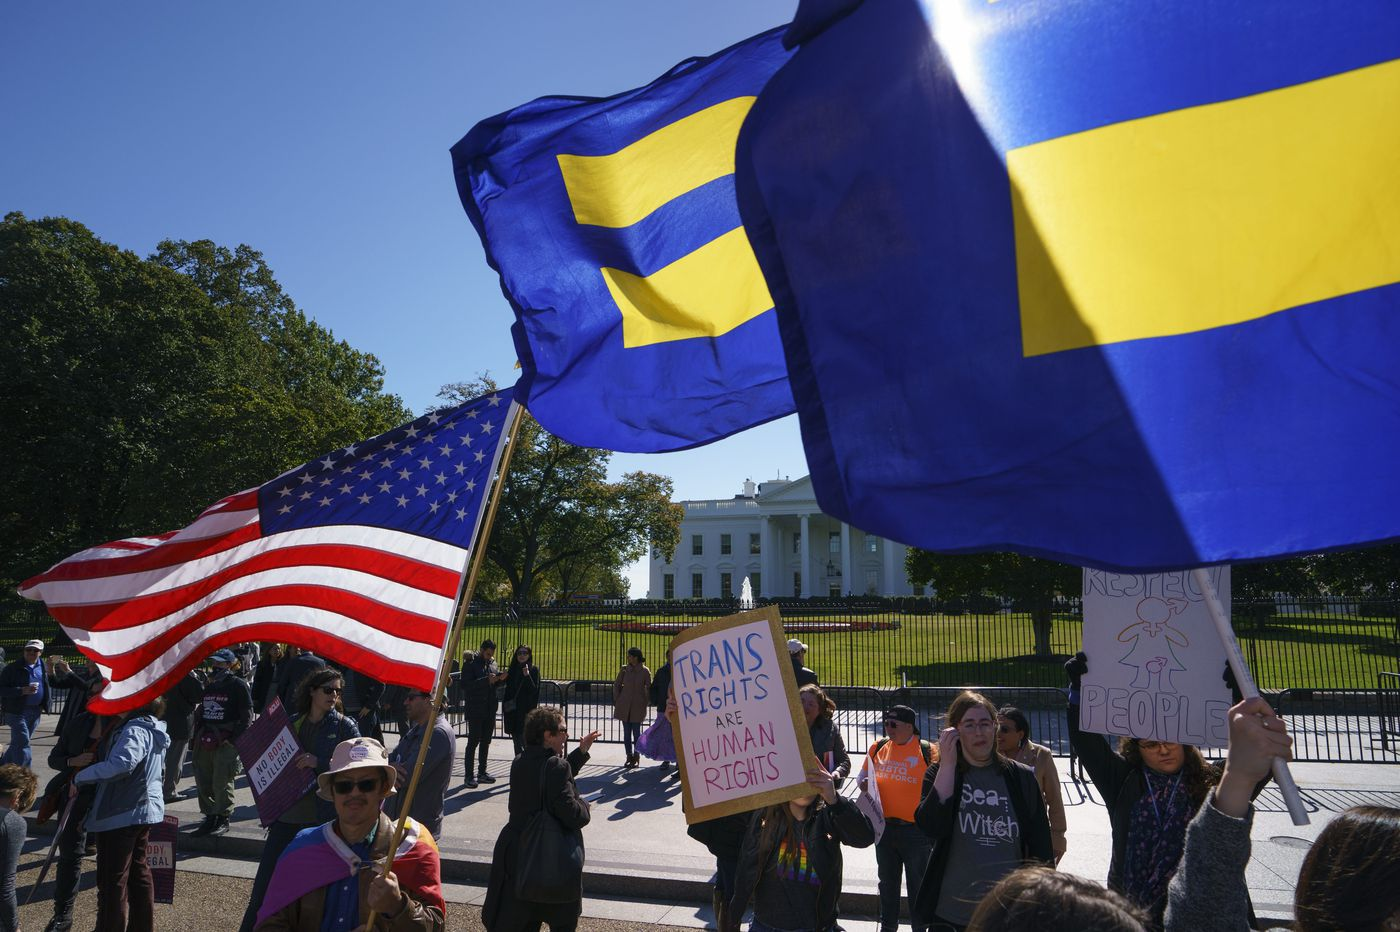 We need to support transgender youth in distress | Opinion